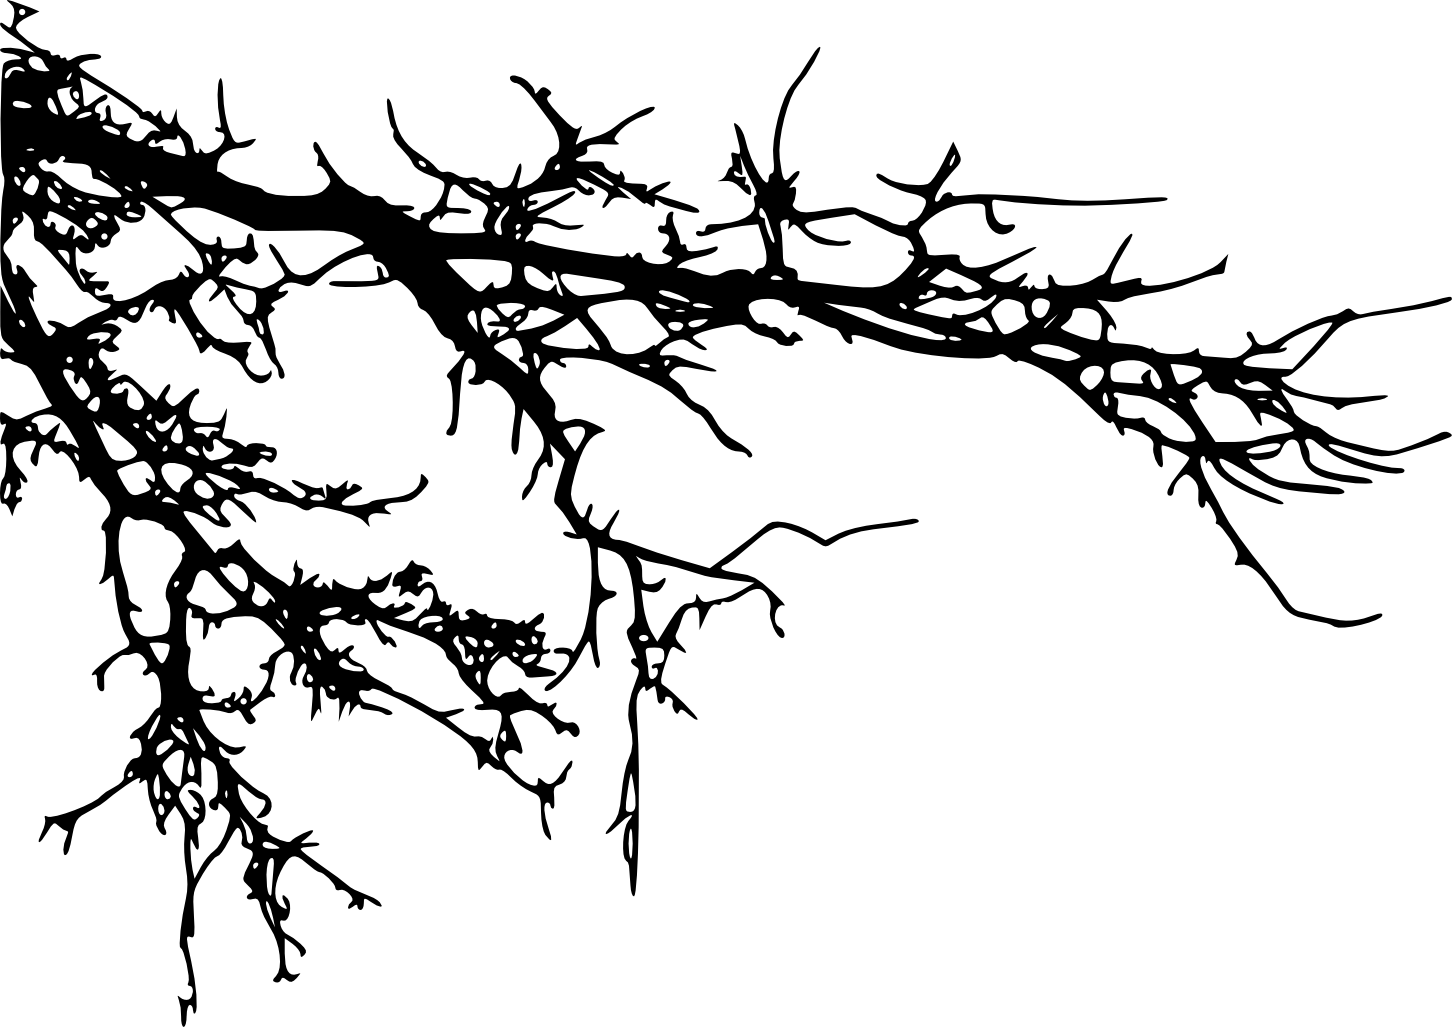 Branch Tree Silhouette Clip art.